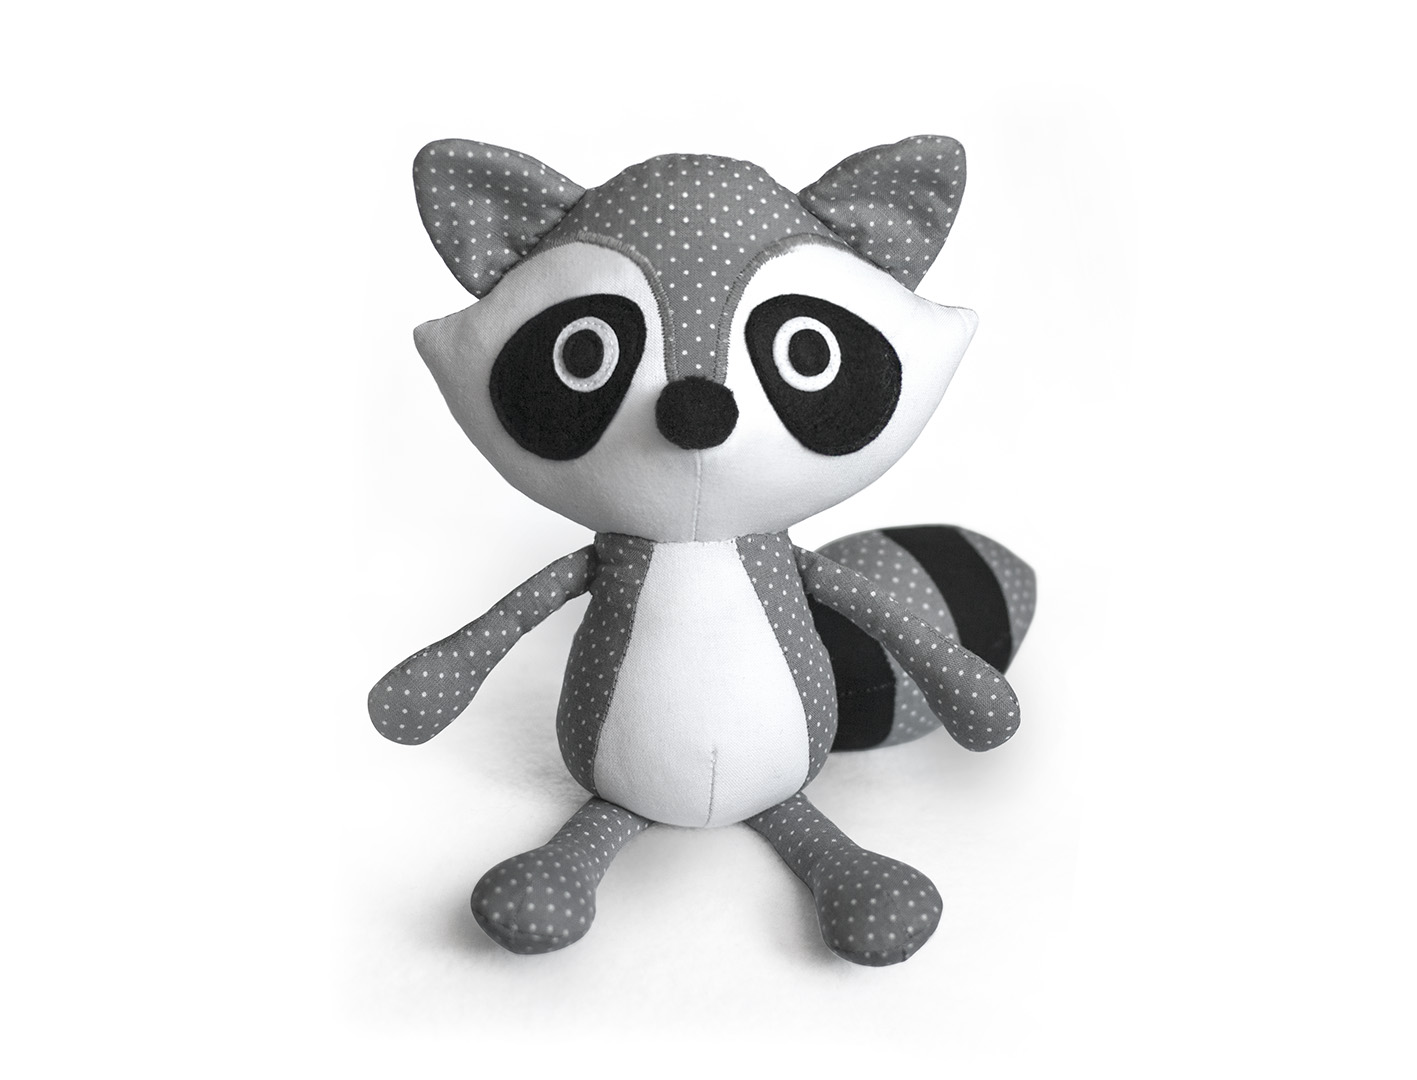 Soft Toy Patterns : Toy patterns by diy fluffies raccoon sewing pattern